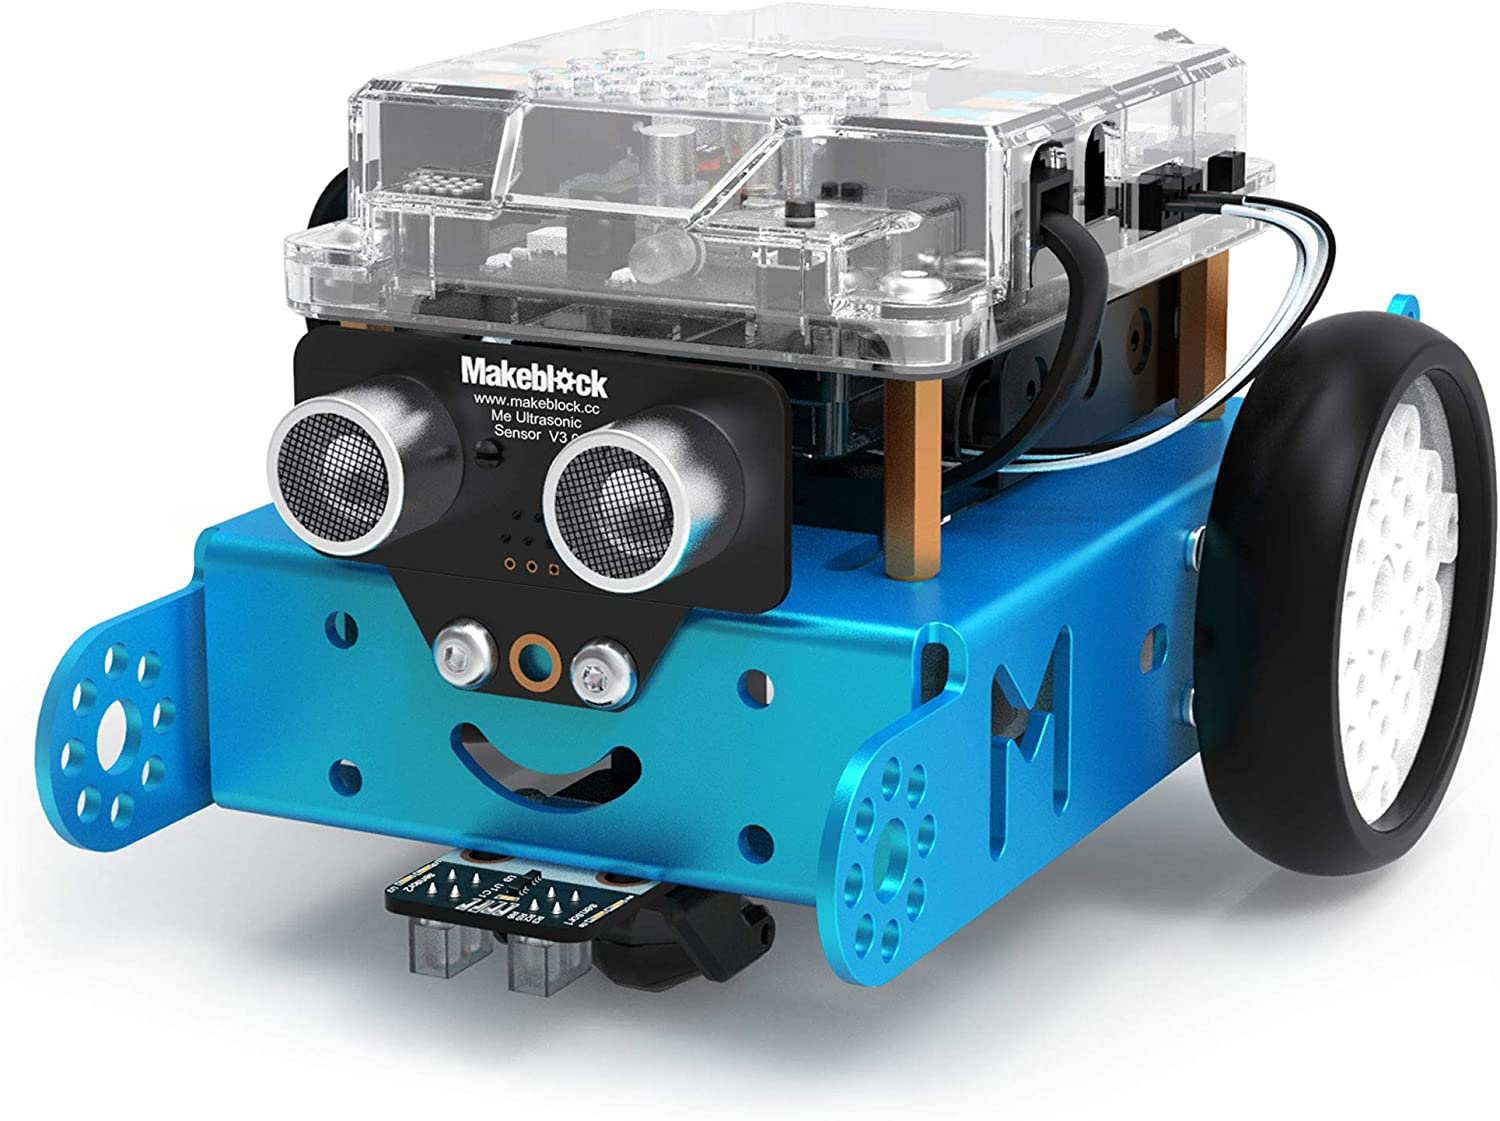 Top 10 Best Robotics for Kids (2020 Reviews & Buying Guide) 3